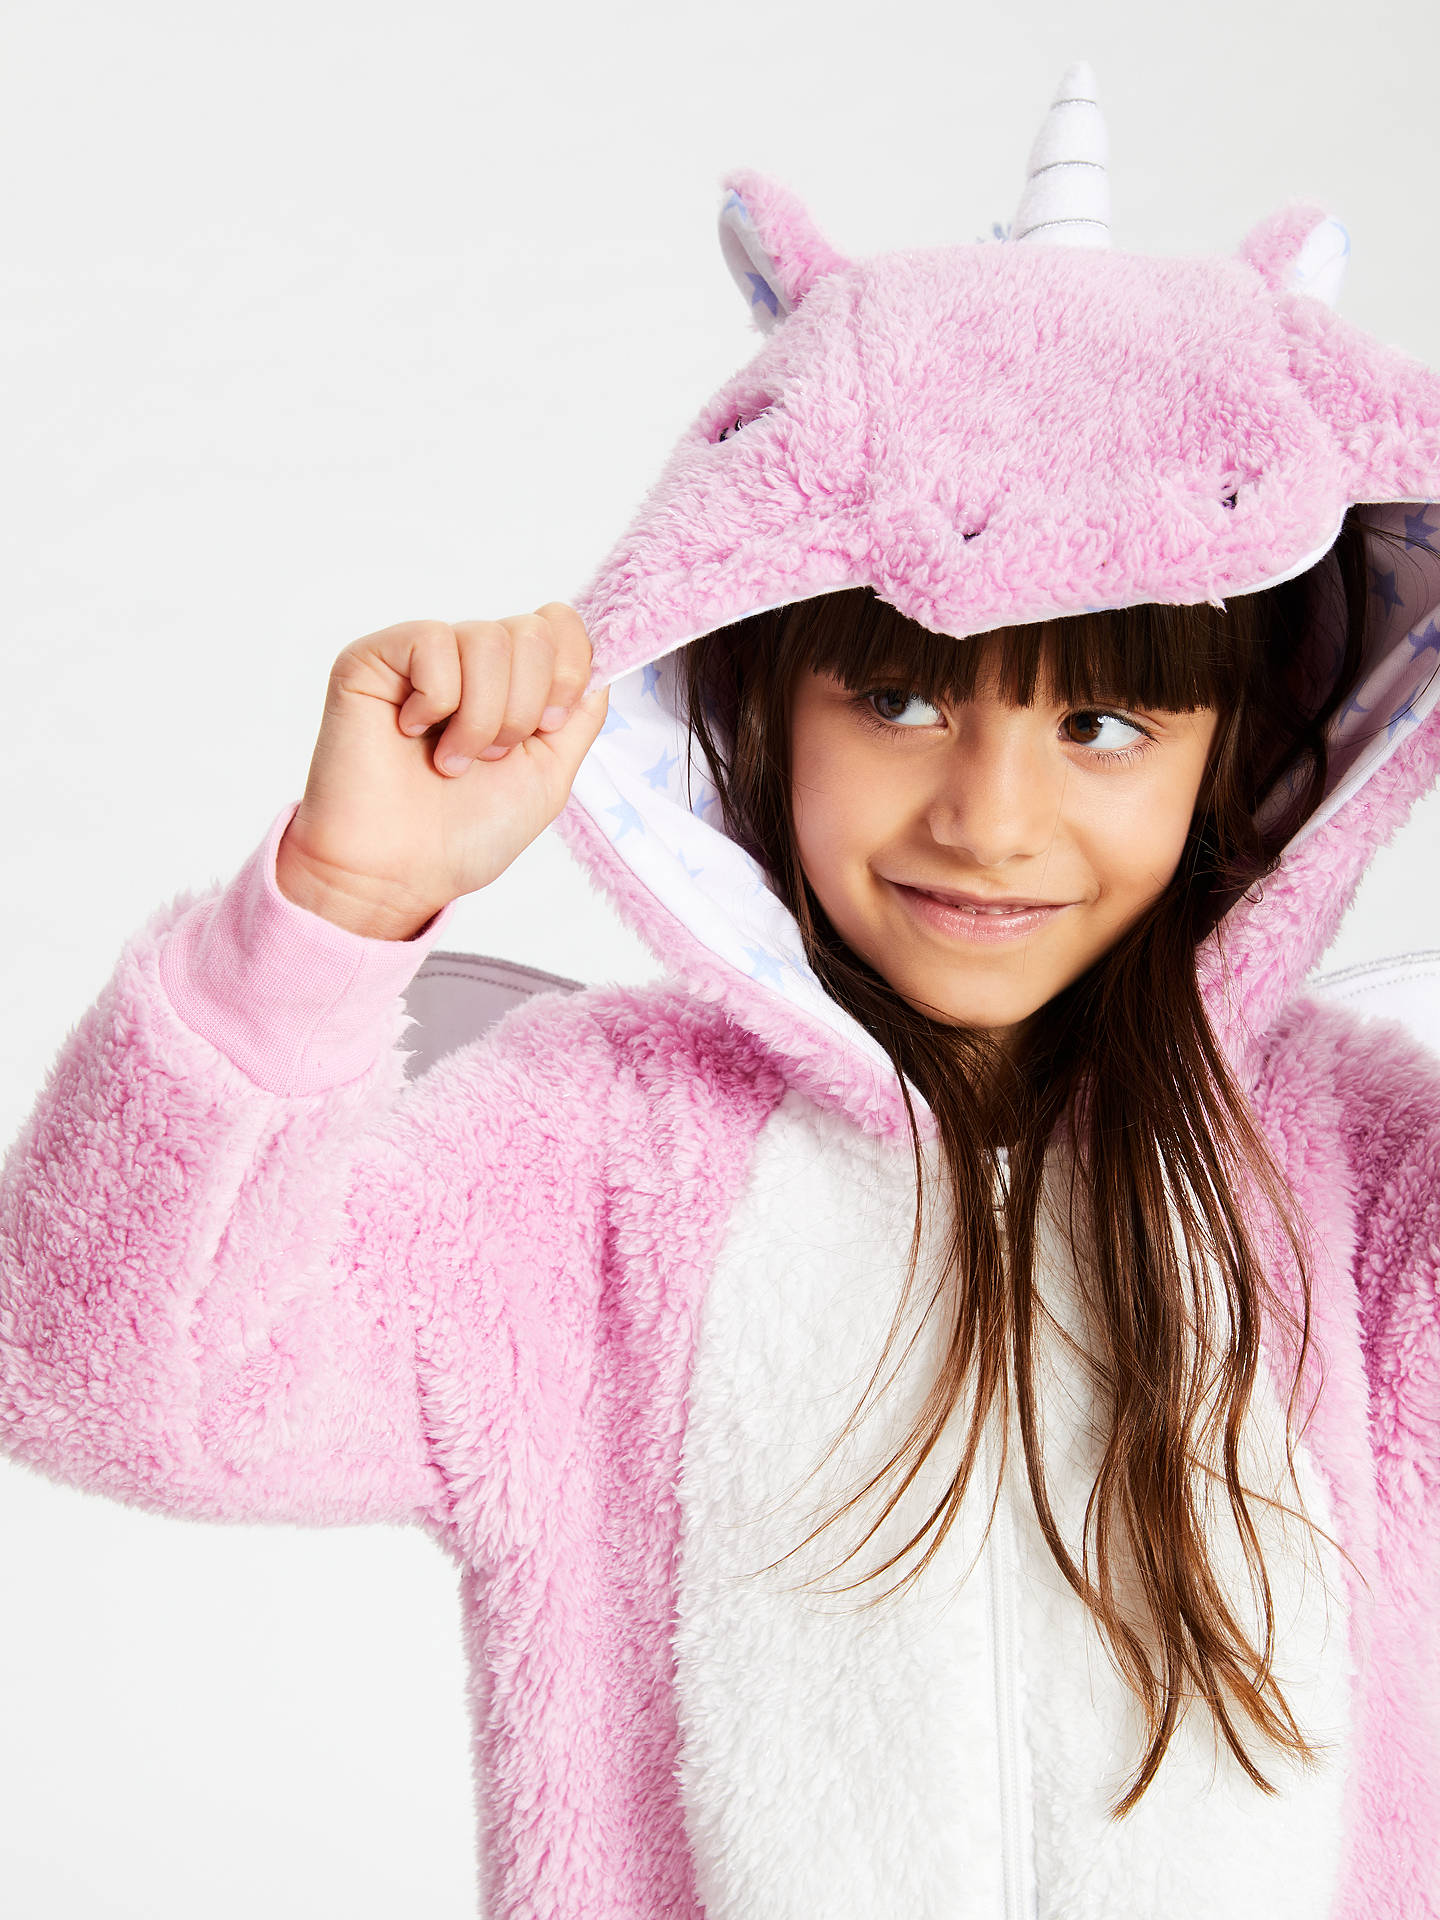 BuyJohn Lewis & Partners Girls' Unicorn Fleece Onesie, Pink, 3 years Online at johnlewis.com